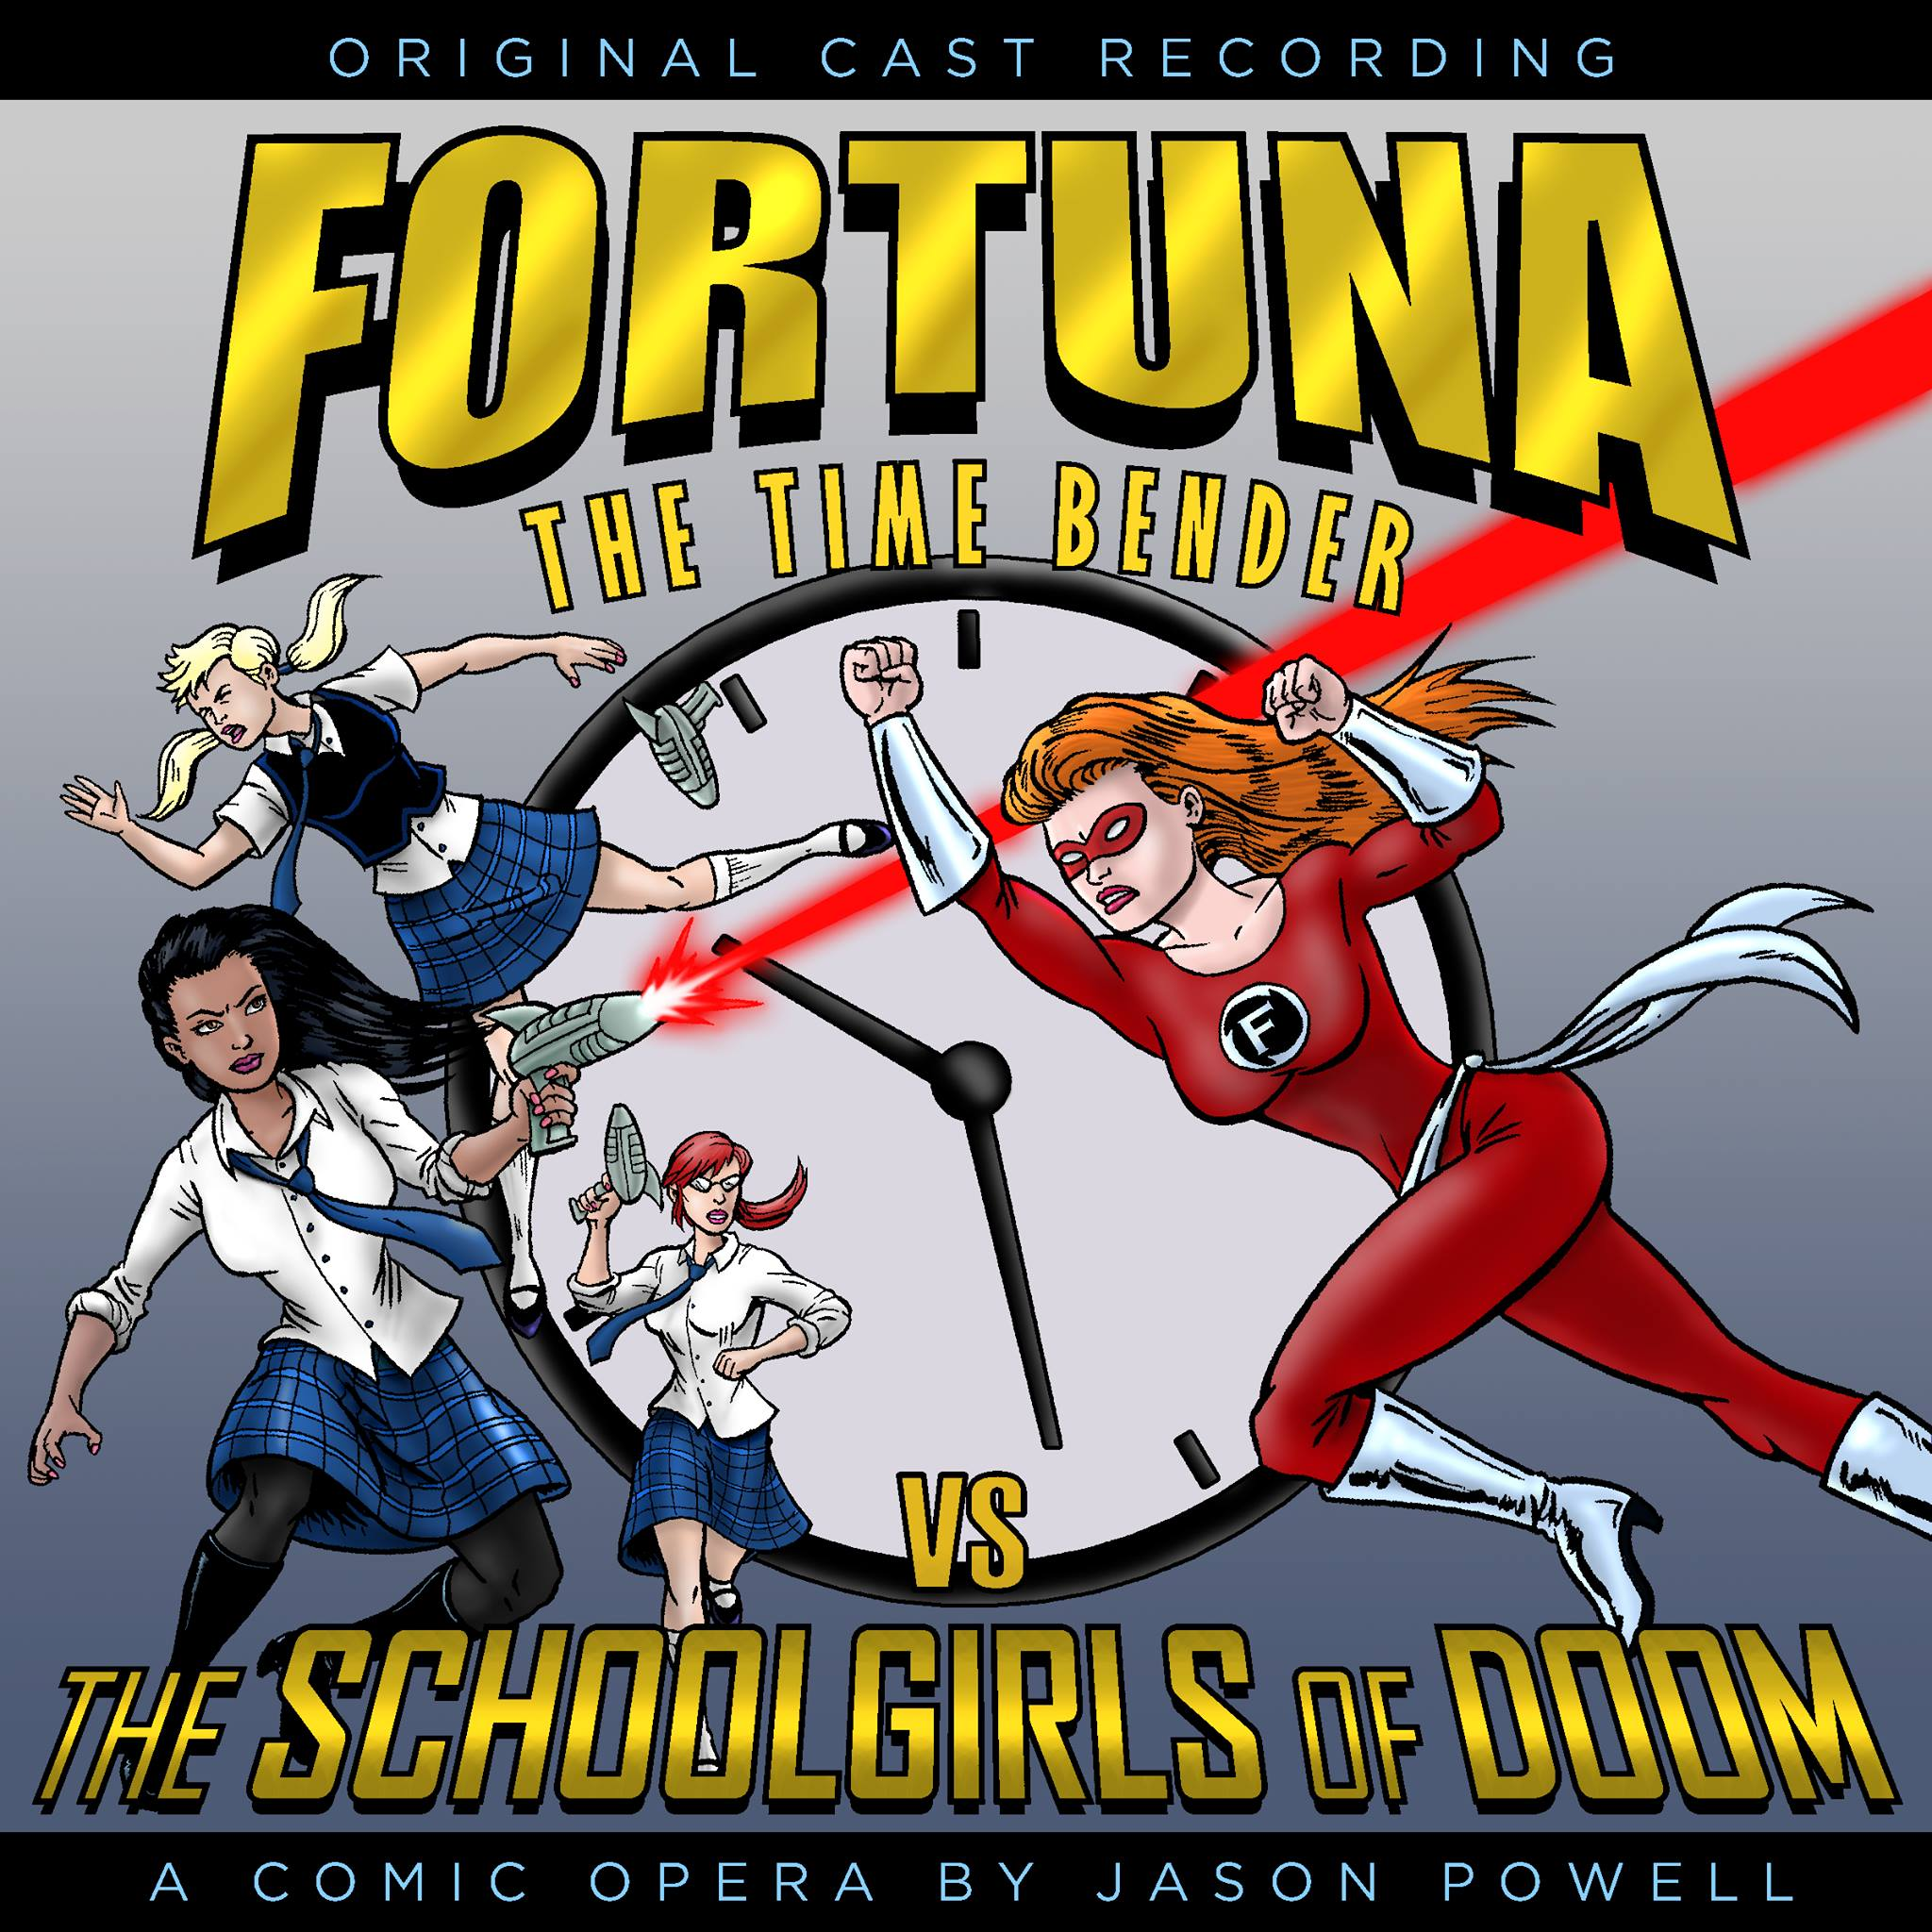 Fortuna the Timebender vs. The School Girls of Doom